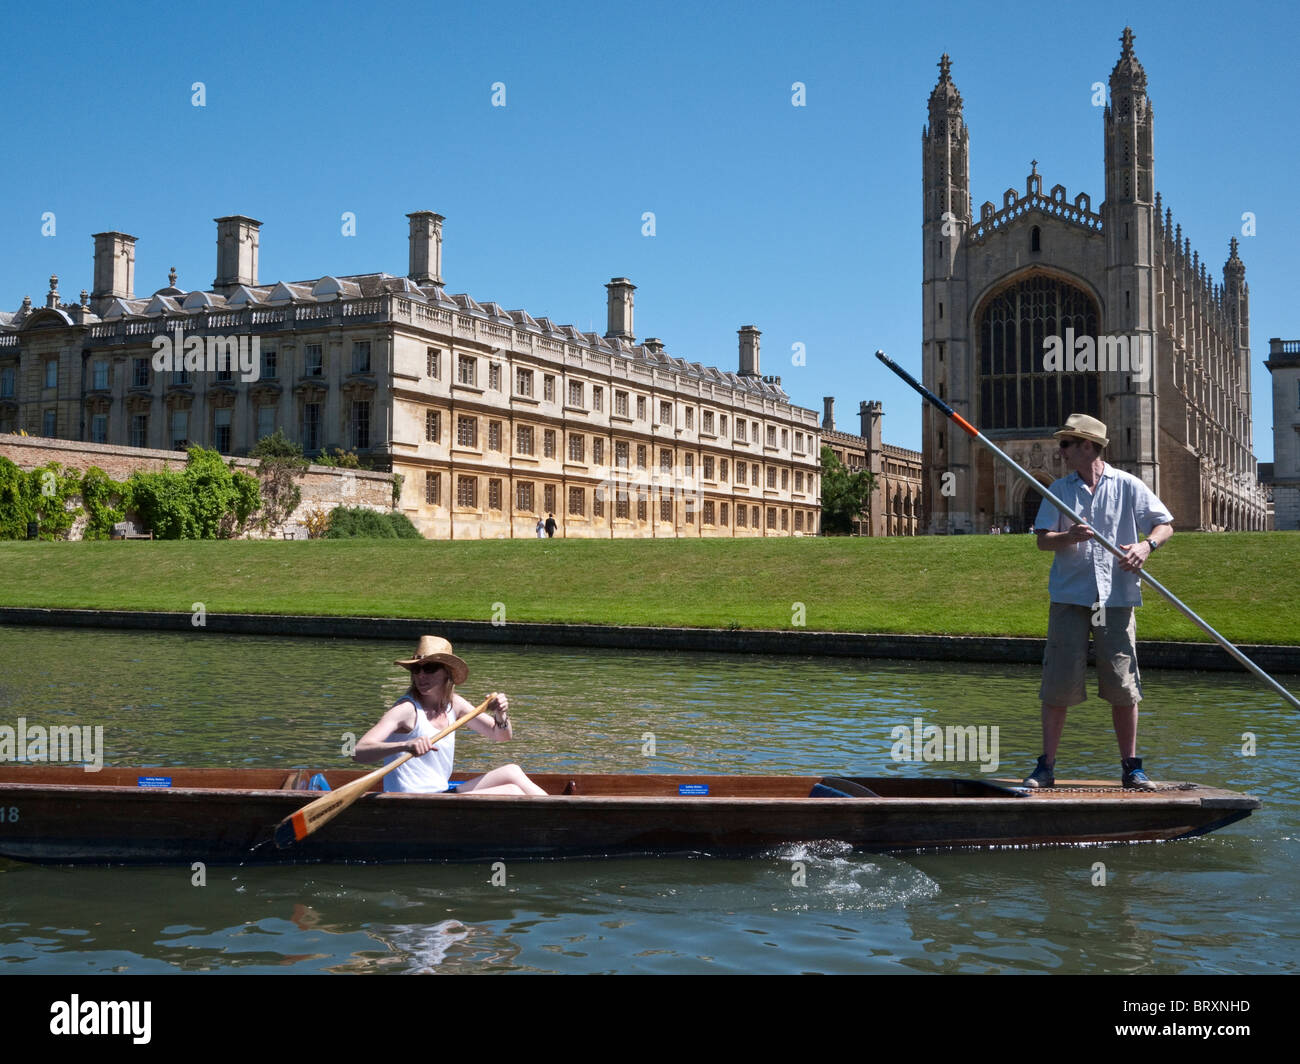 Punters on River Cam passing Kings College, Cambridge University May 2010 - Stock Image